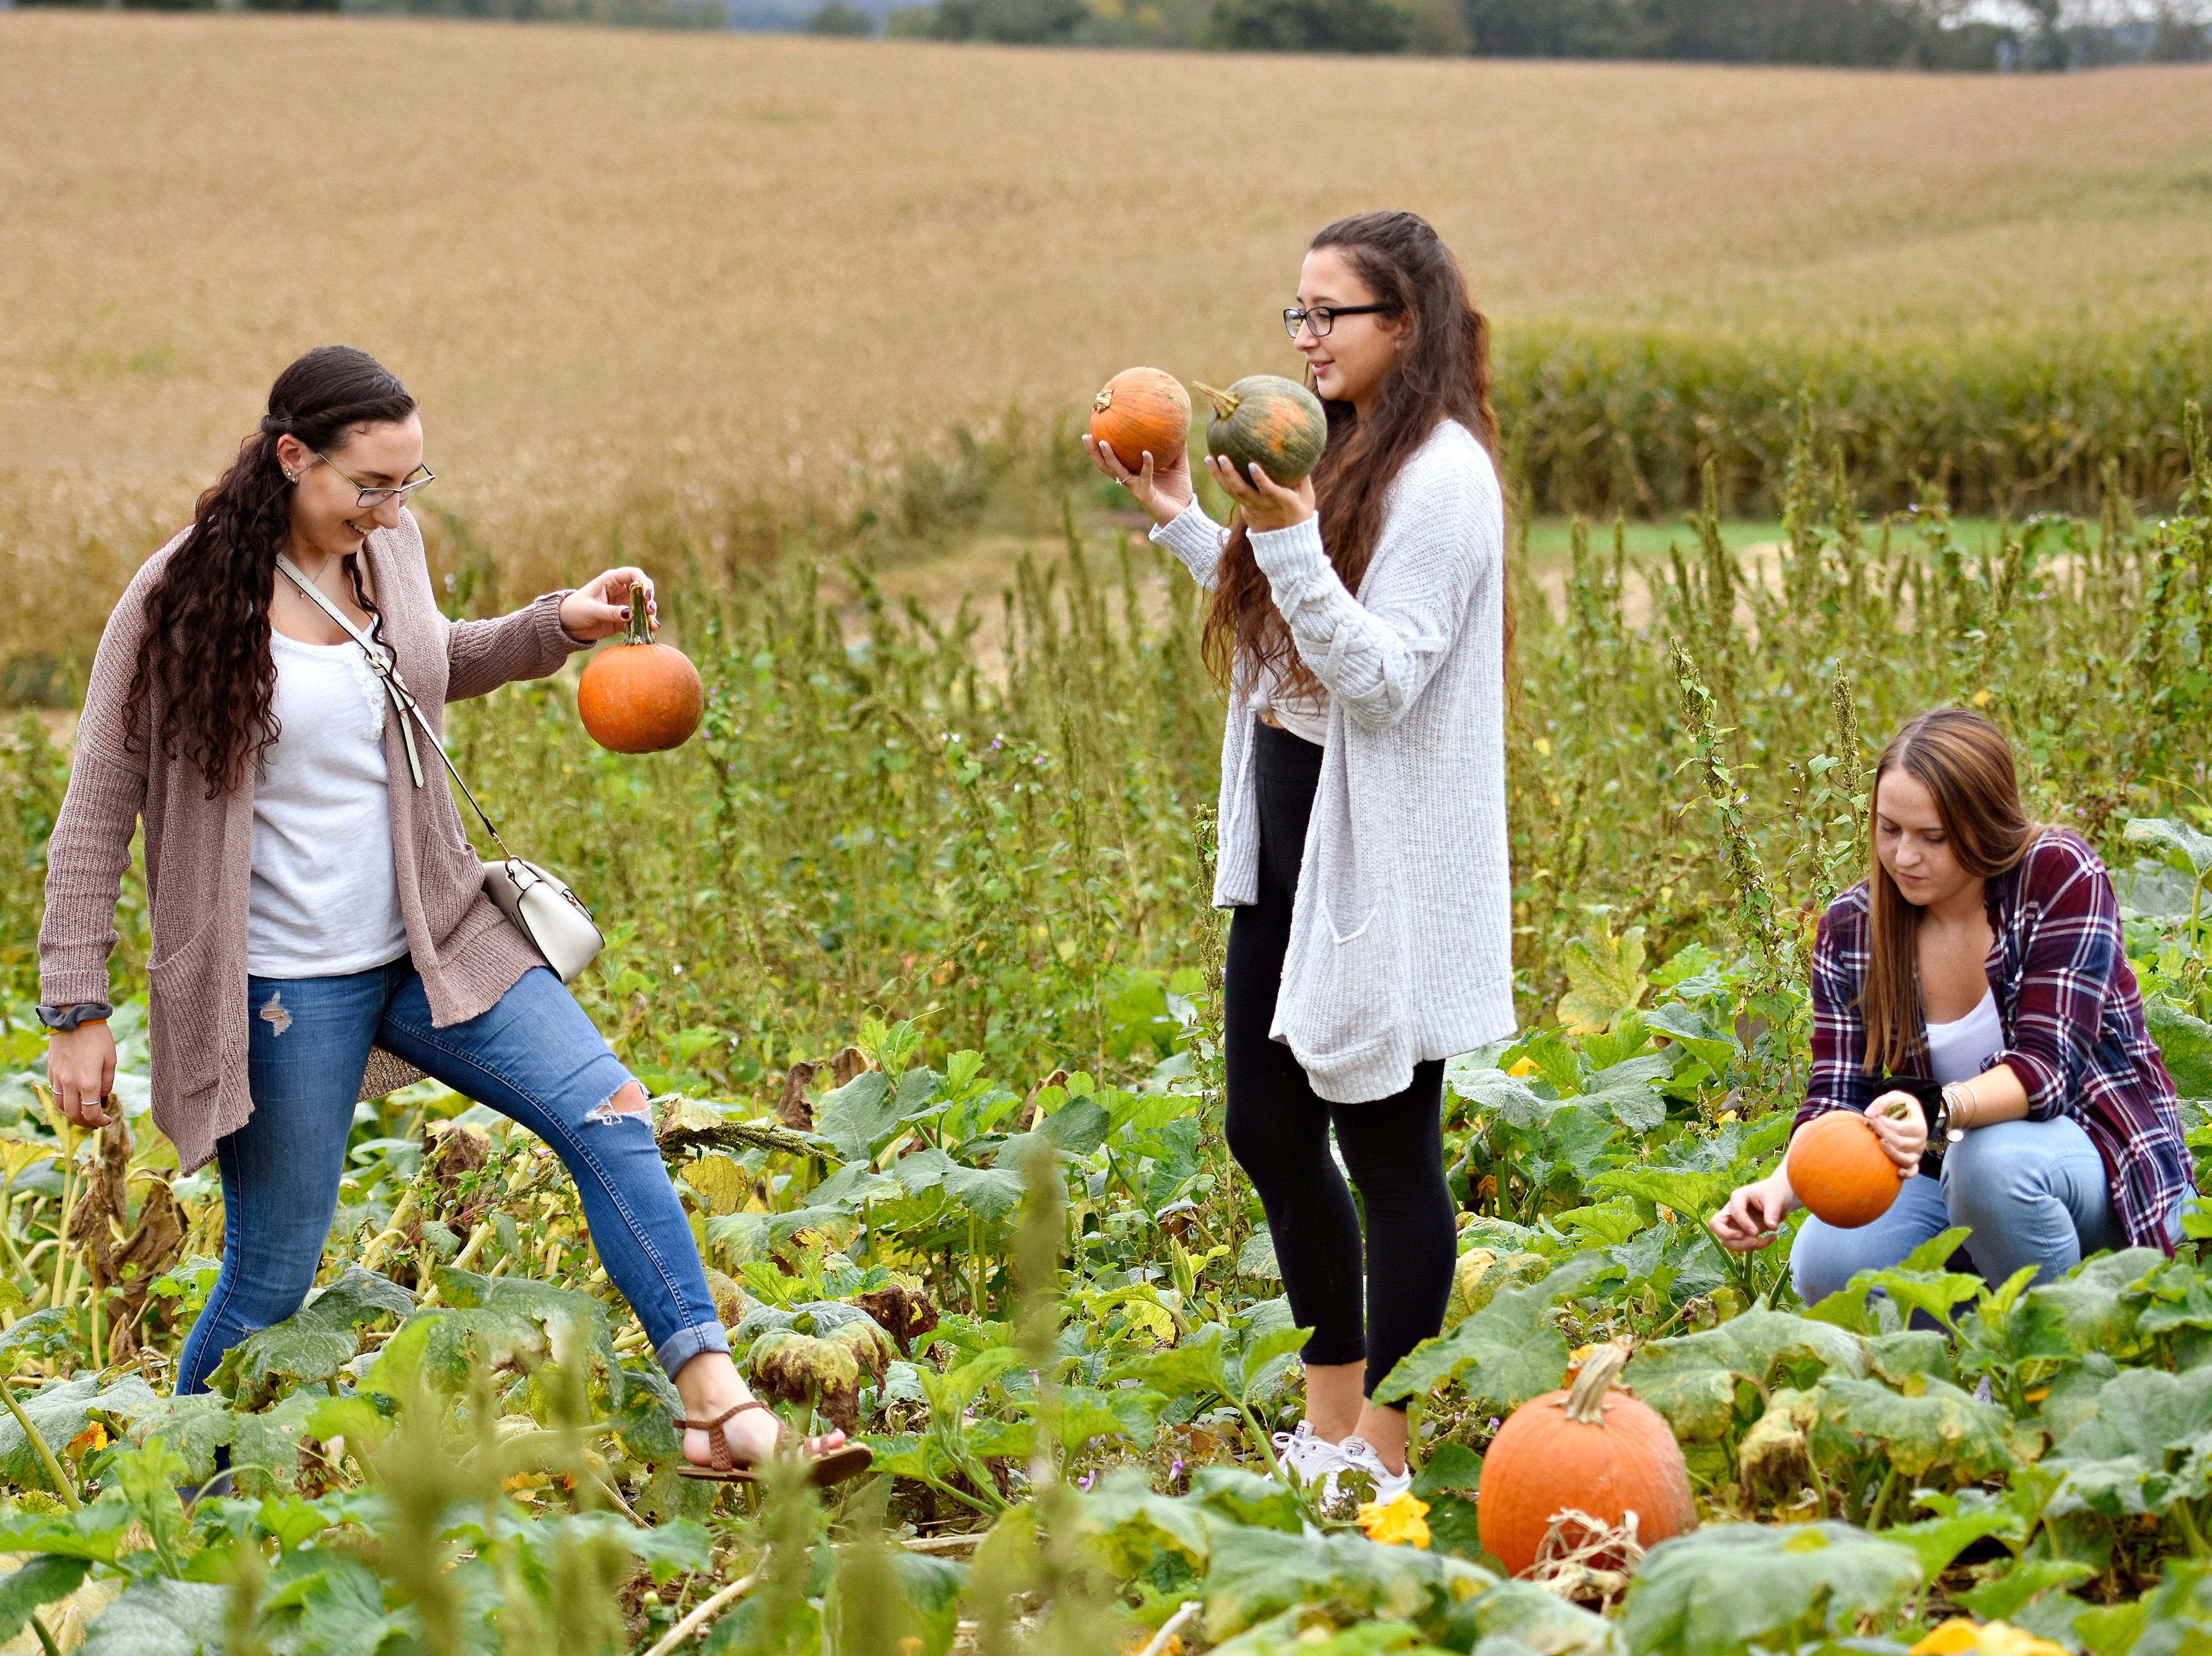 From left, McKenzie Krewson, Lilly Summers and Kara Crawford, all of West York Borough,  select pumpkins from the patch at Flinchbaugh's Orchard & Farm Market in Hellam Township, Friday, Oct. 5, 2018. Dawn J. Sagert photo